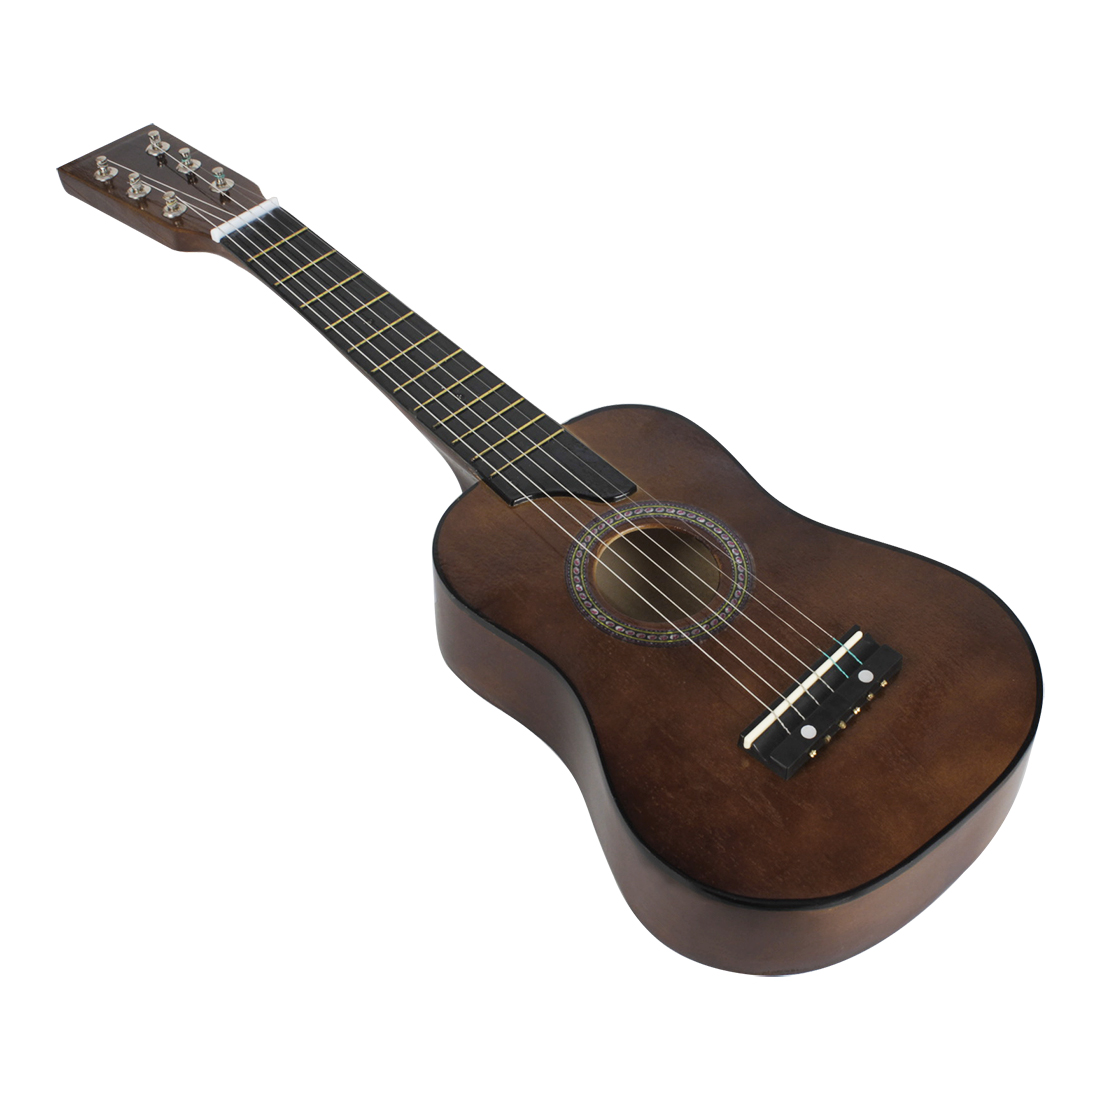 Guitar Mini 25 Inch Basswood Acoustic 12 Frets 6 Strings Guitar With Pick &Strings For Children Beginner Musical Instrument Toy